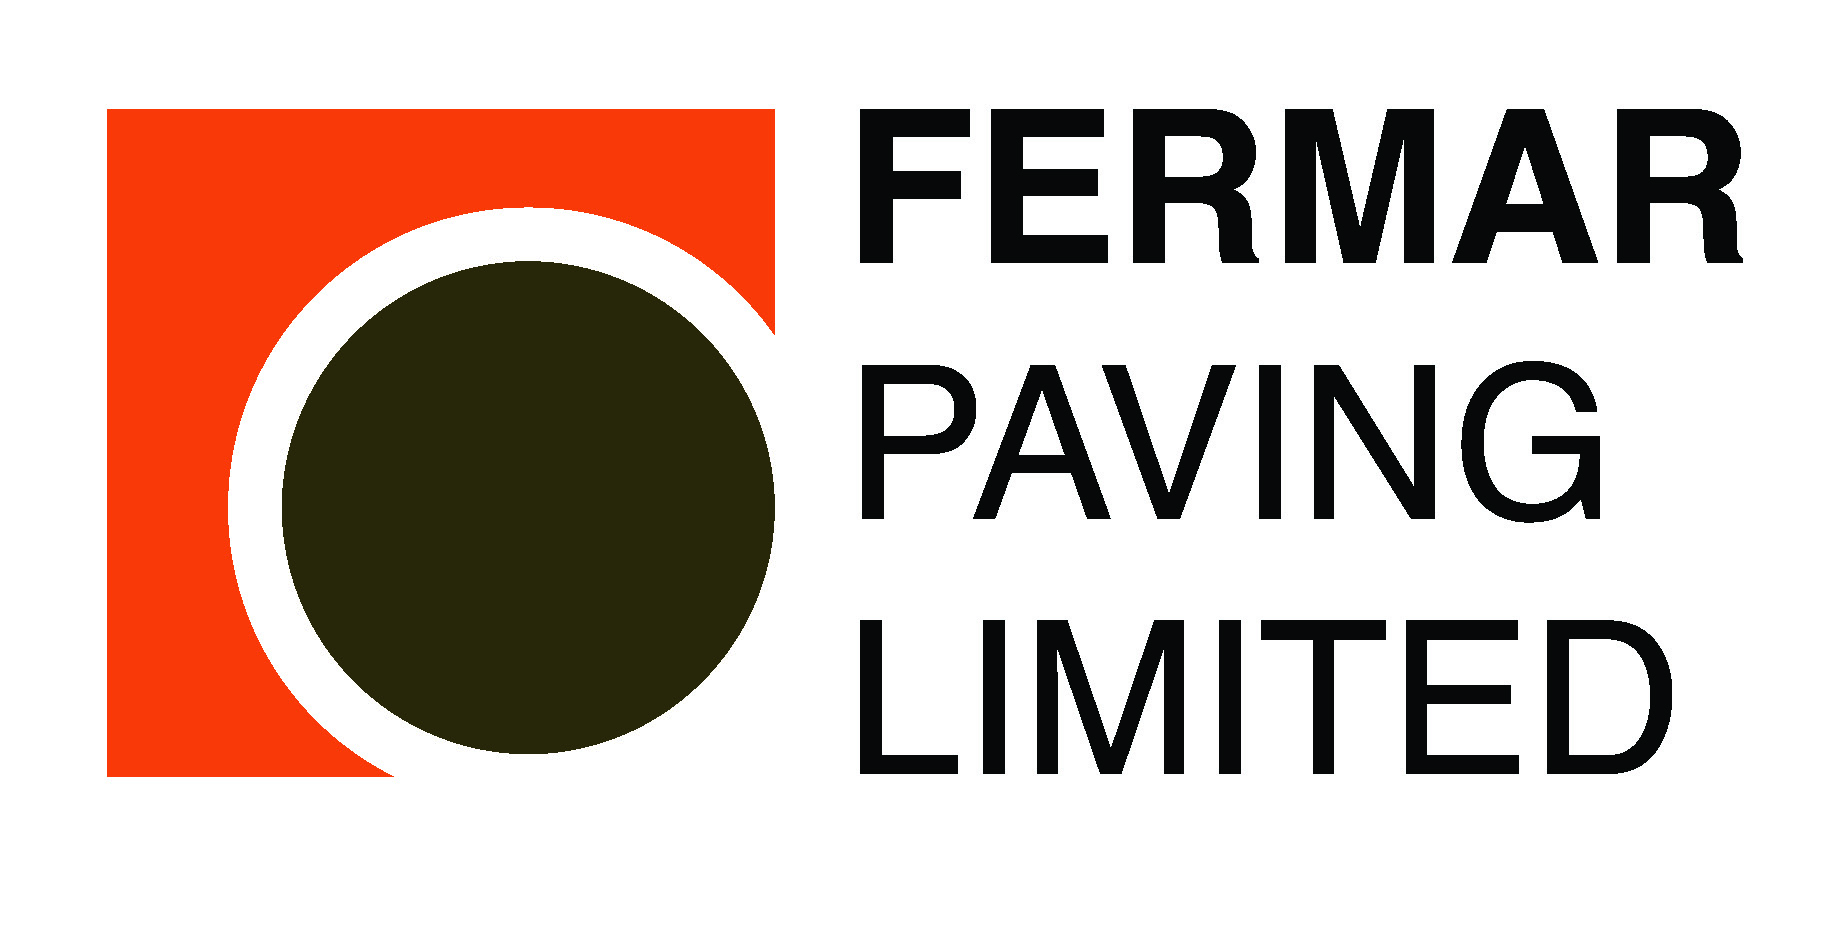 Fermar Paving Limited company